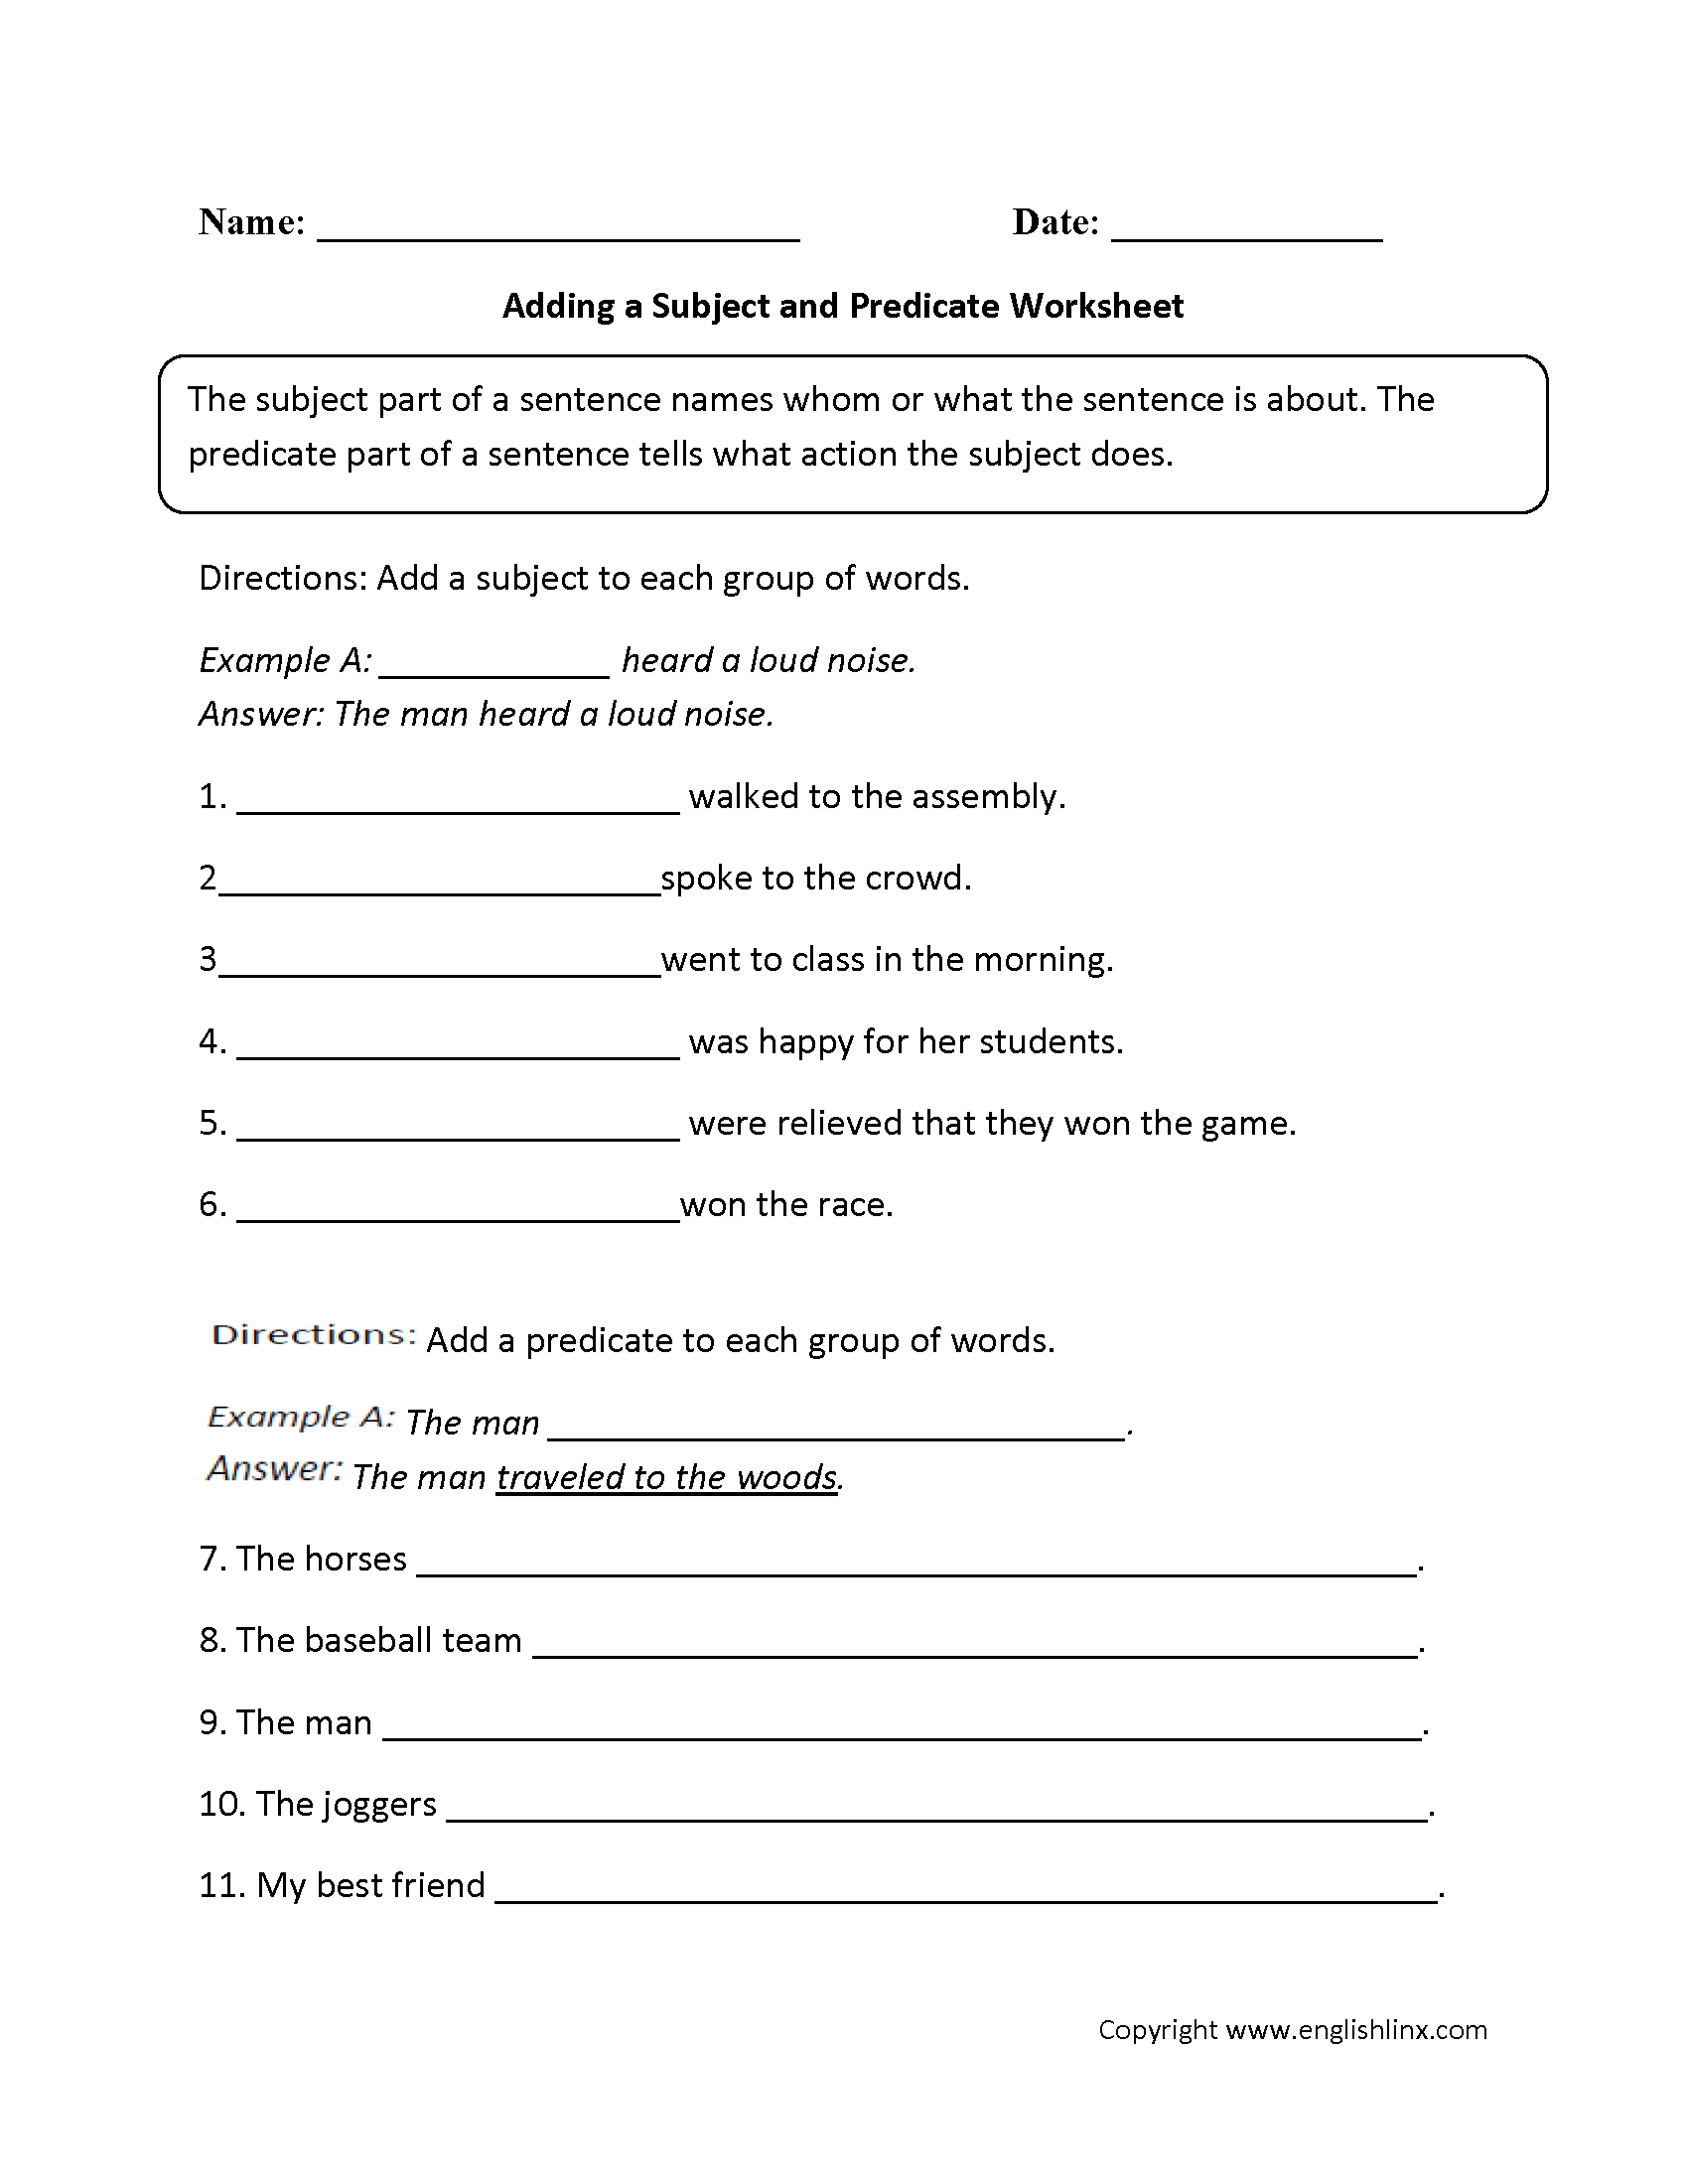 Adding A Subject And Predicate Worksheet | Rti Ela Middle School | Free Printable Subject Predicate Worksheets 2Nd Grade